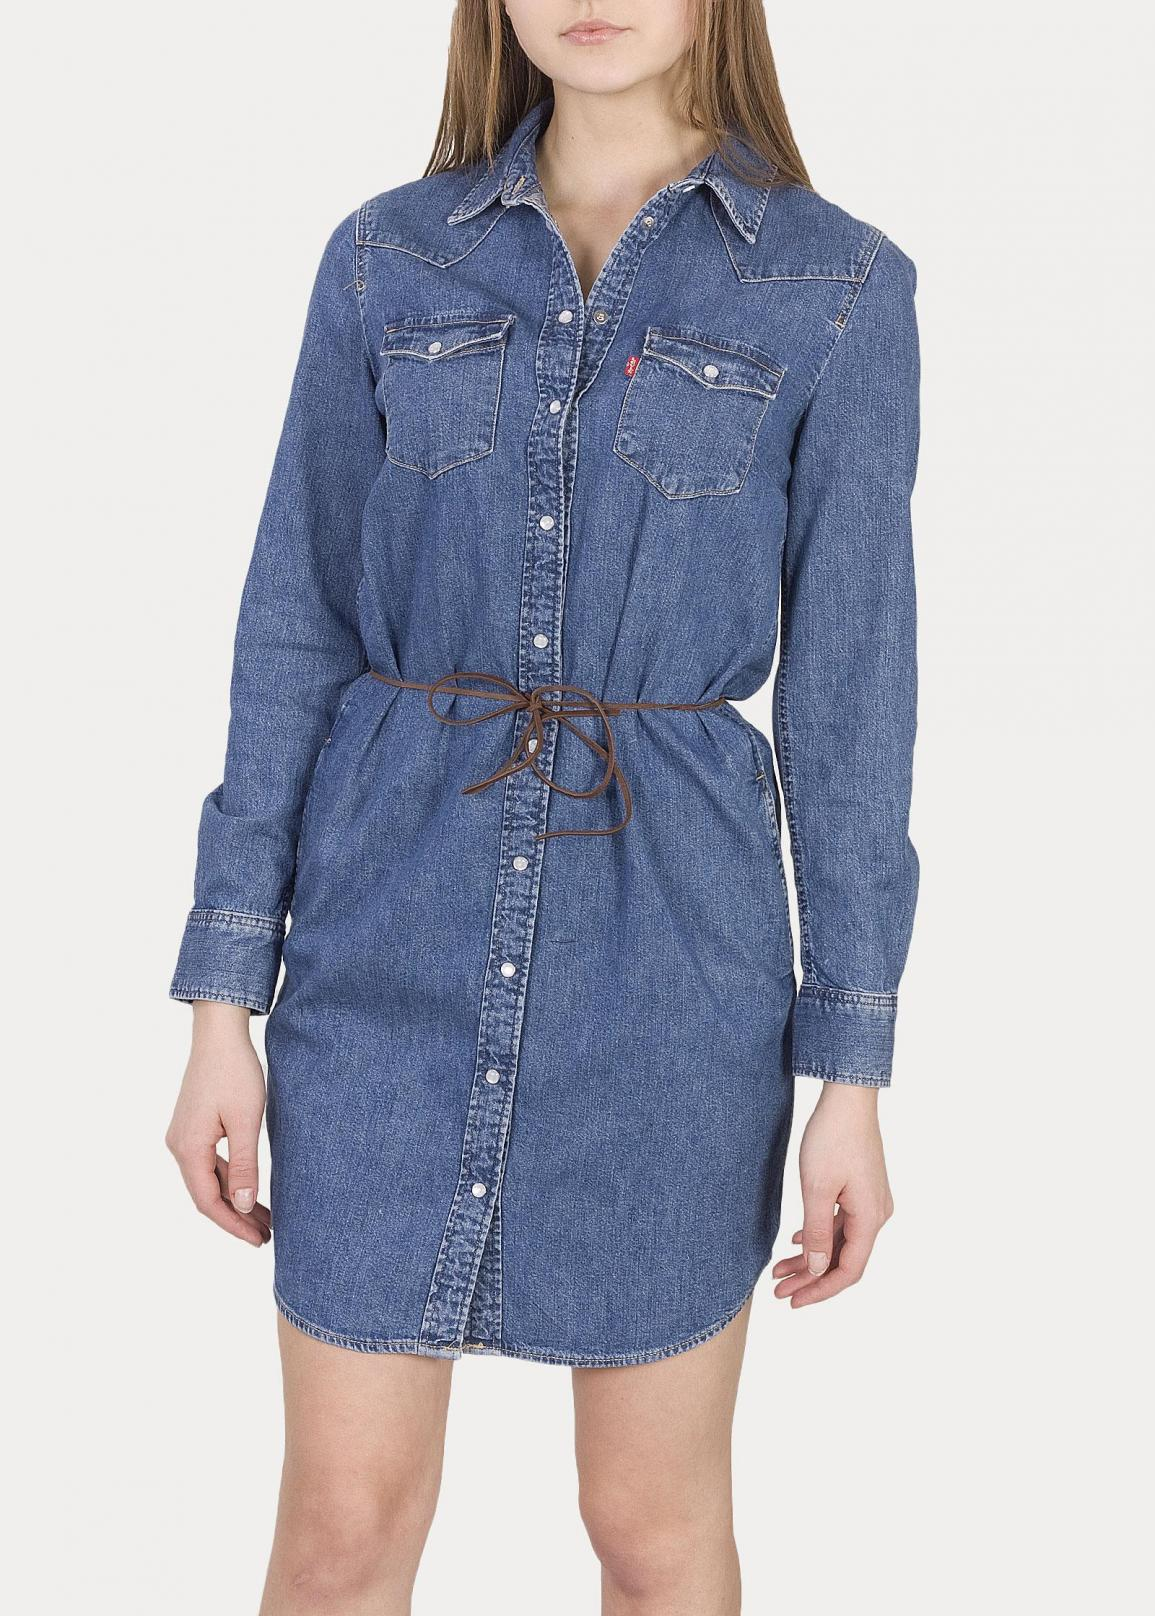 Levi's® Ultimate Western Dress - Back To Life